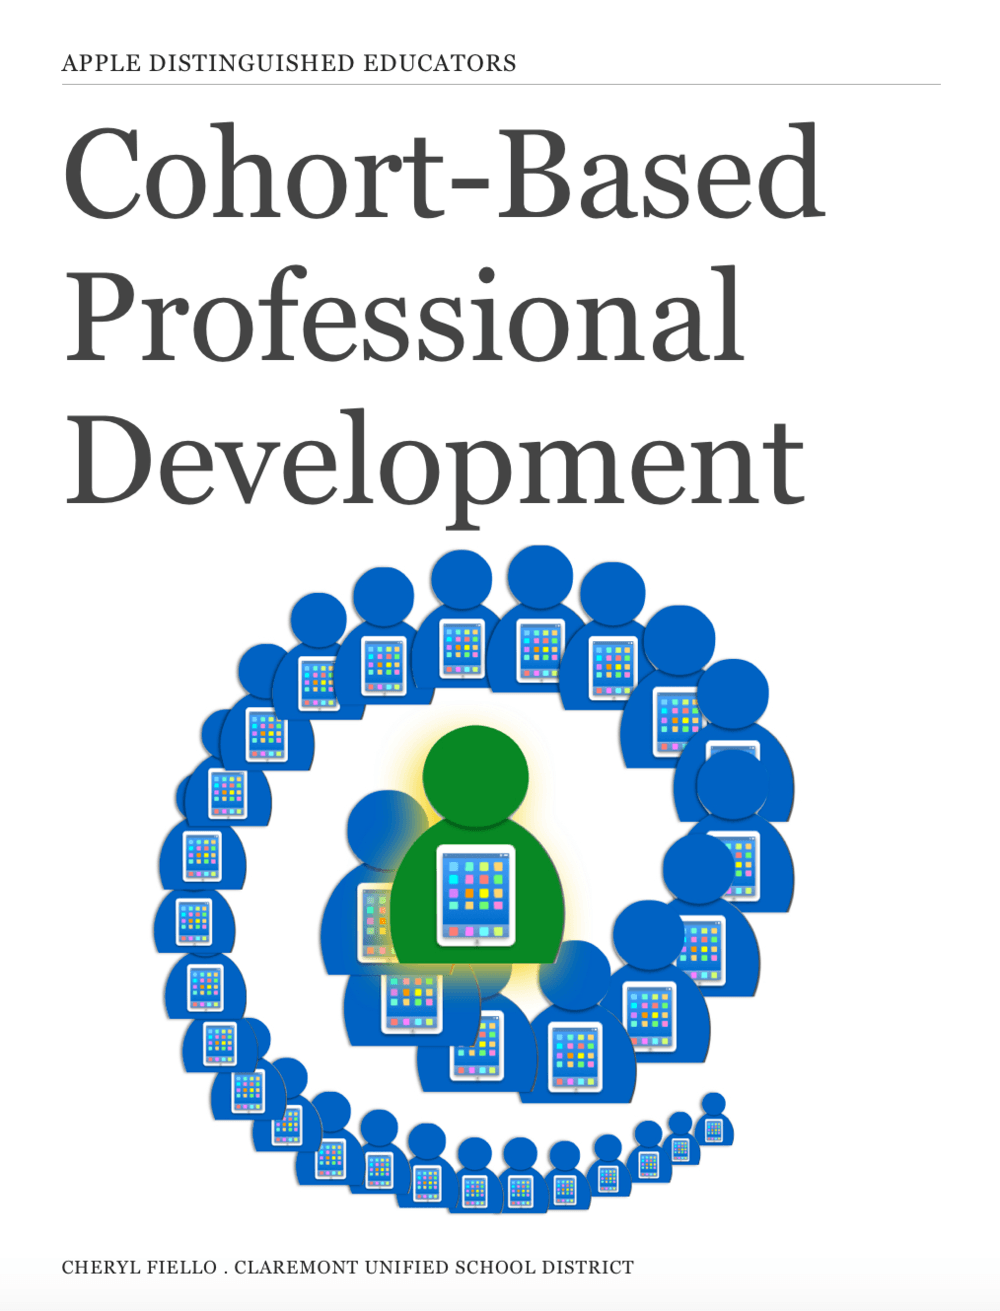 Cohort-Based PD